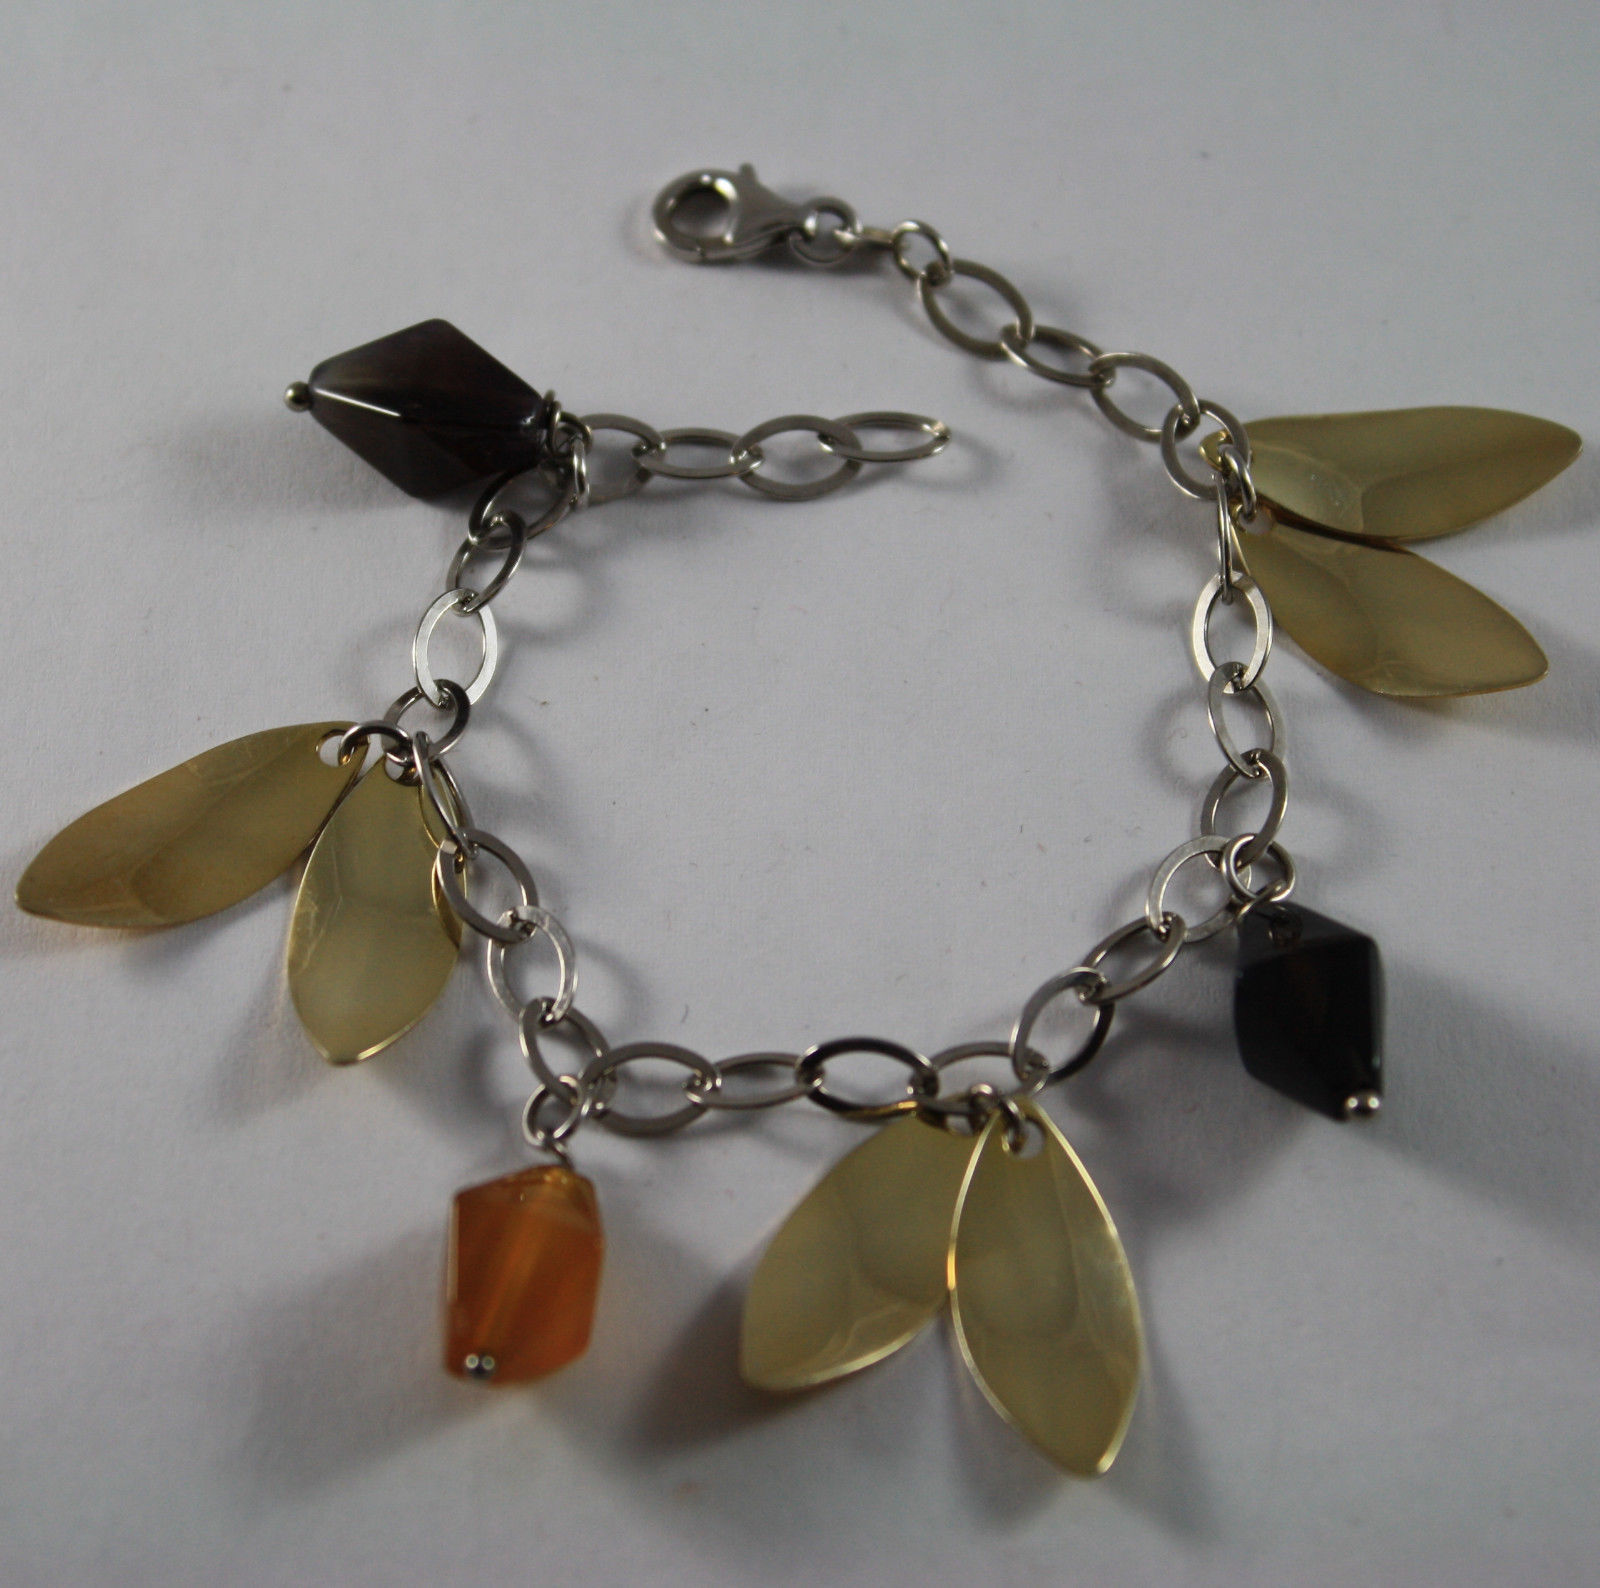 .925 RHODIUM SILVER BRACELET WITH BROWN AGATE AND GOLDEN LEAF